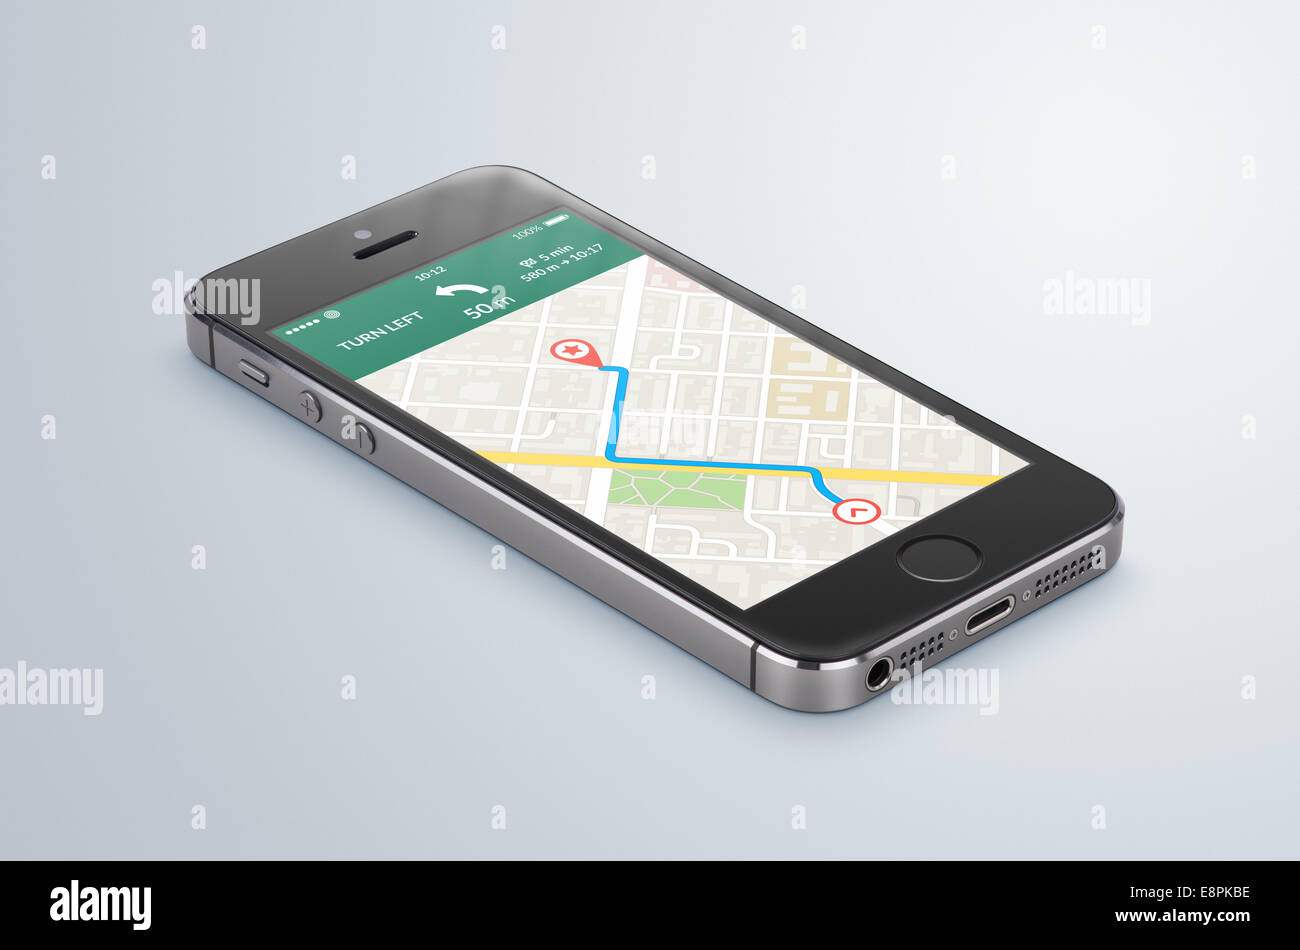 Black modern smartphone with map gps navigation application with planned route on the screen lies on the gray surface. - Stock Image